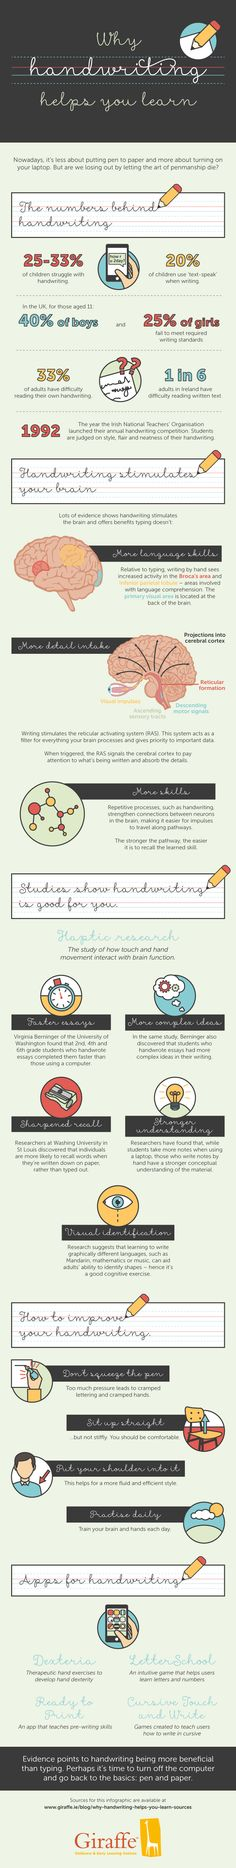 The How Handwriting Enhances Learning Infographic looks at the benefits and more that come with learning the art of handwriting.